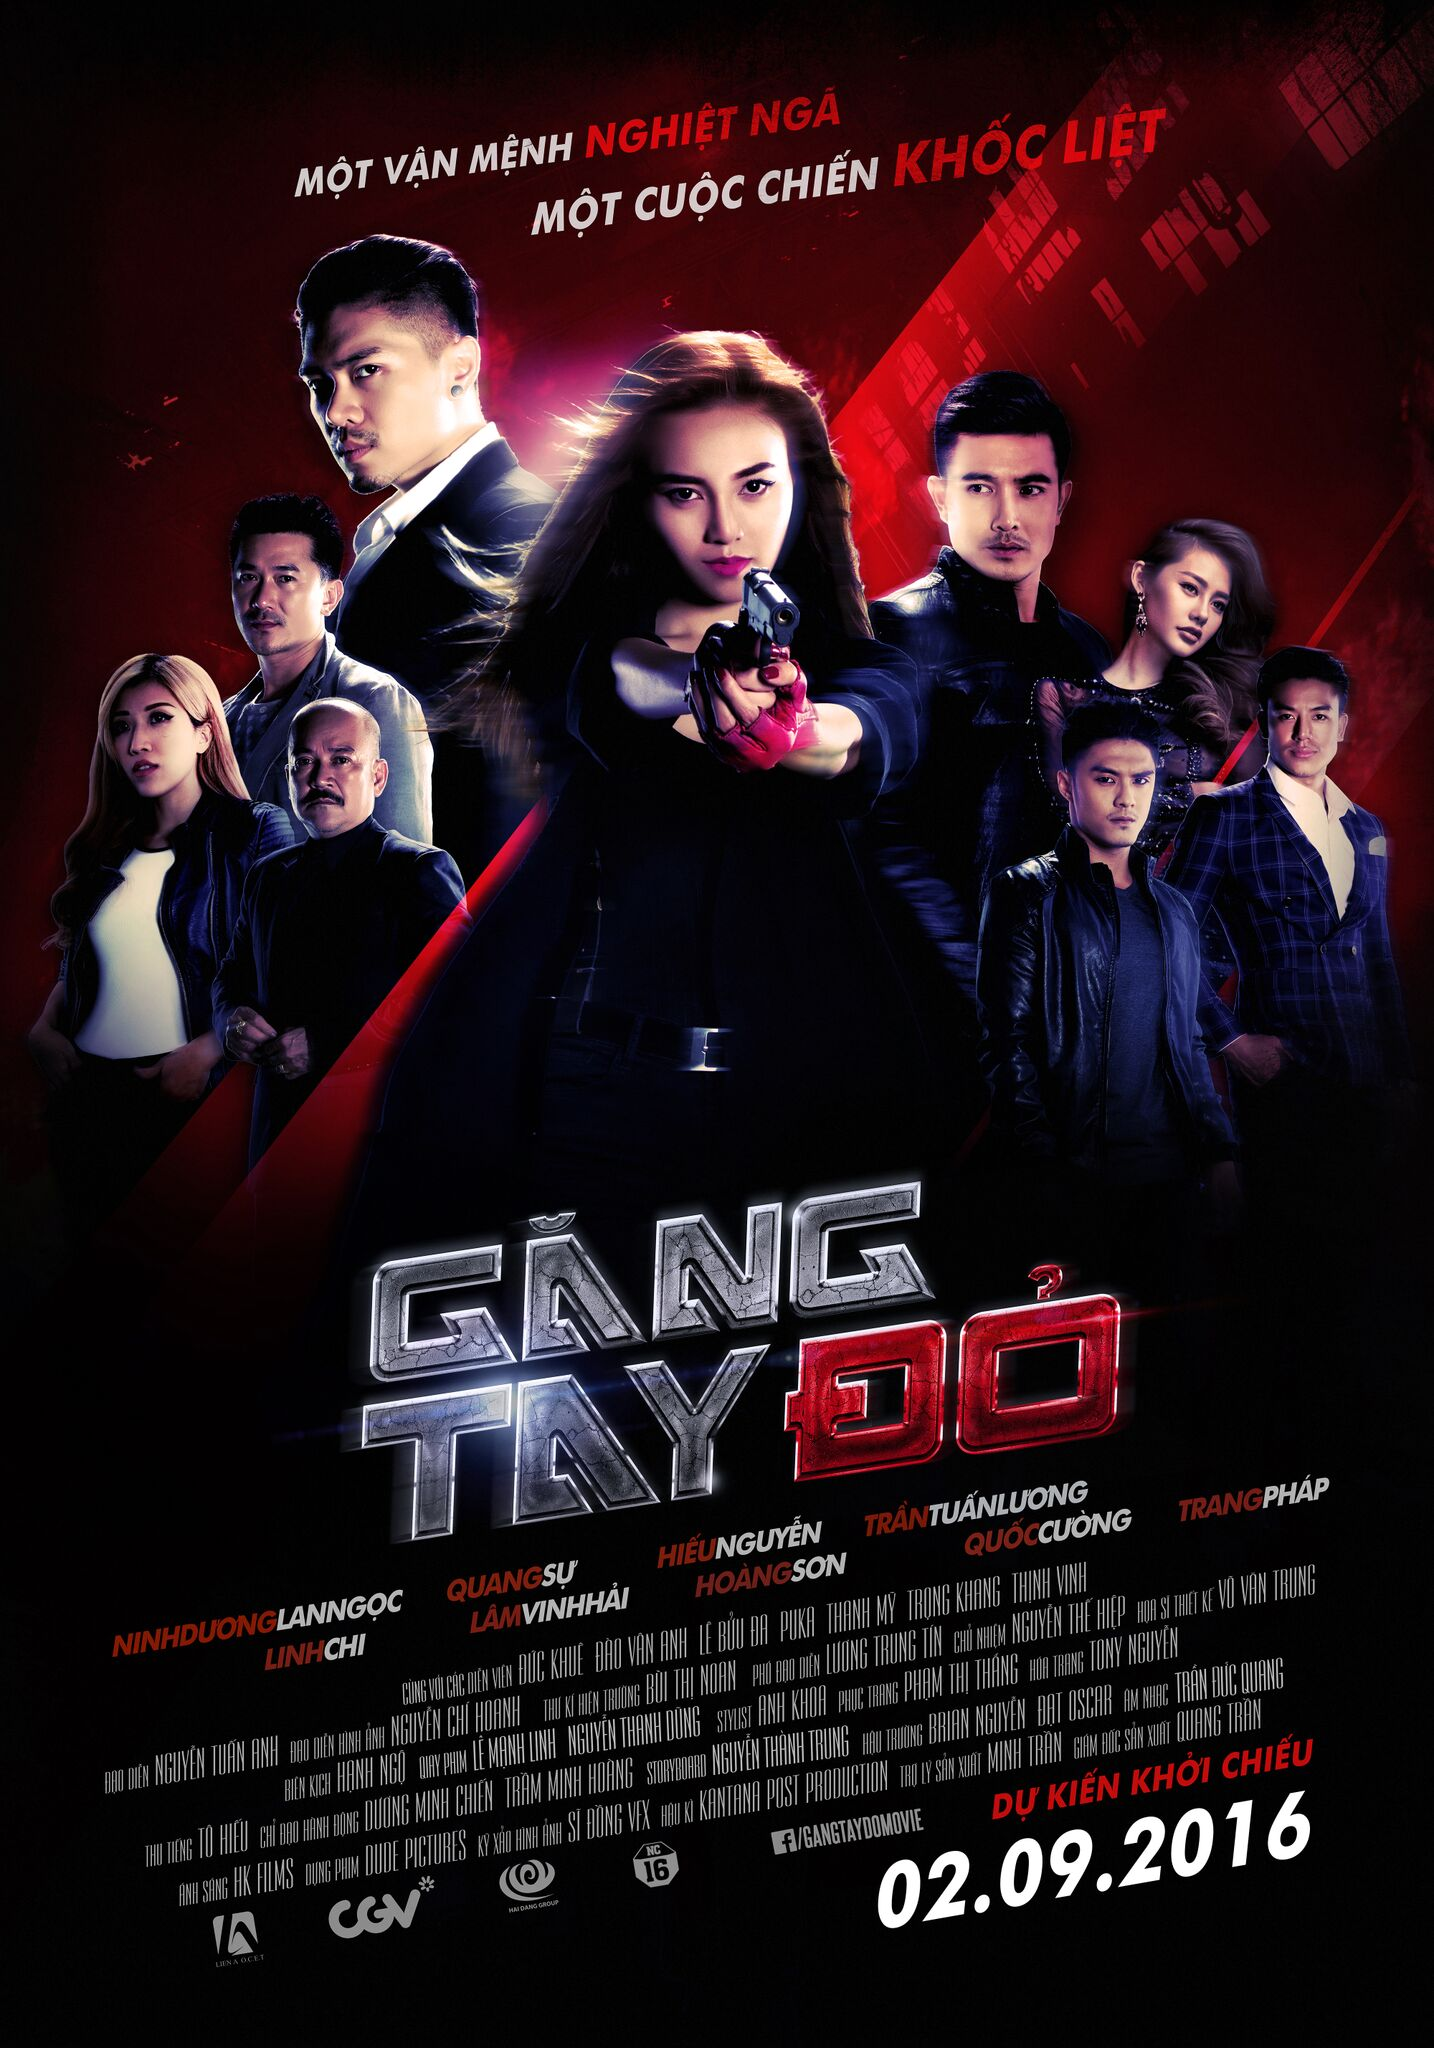 Gang tay do poster